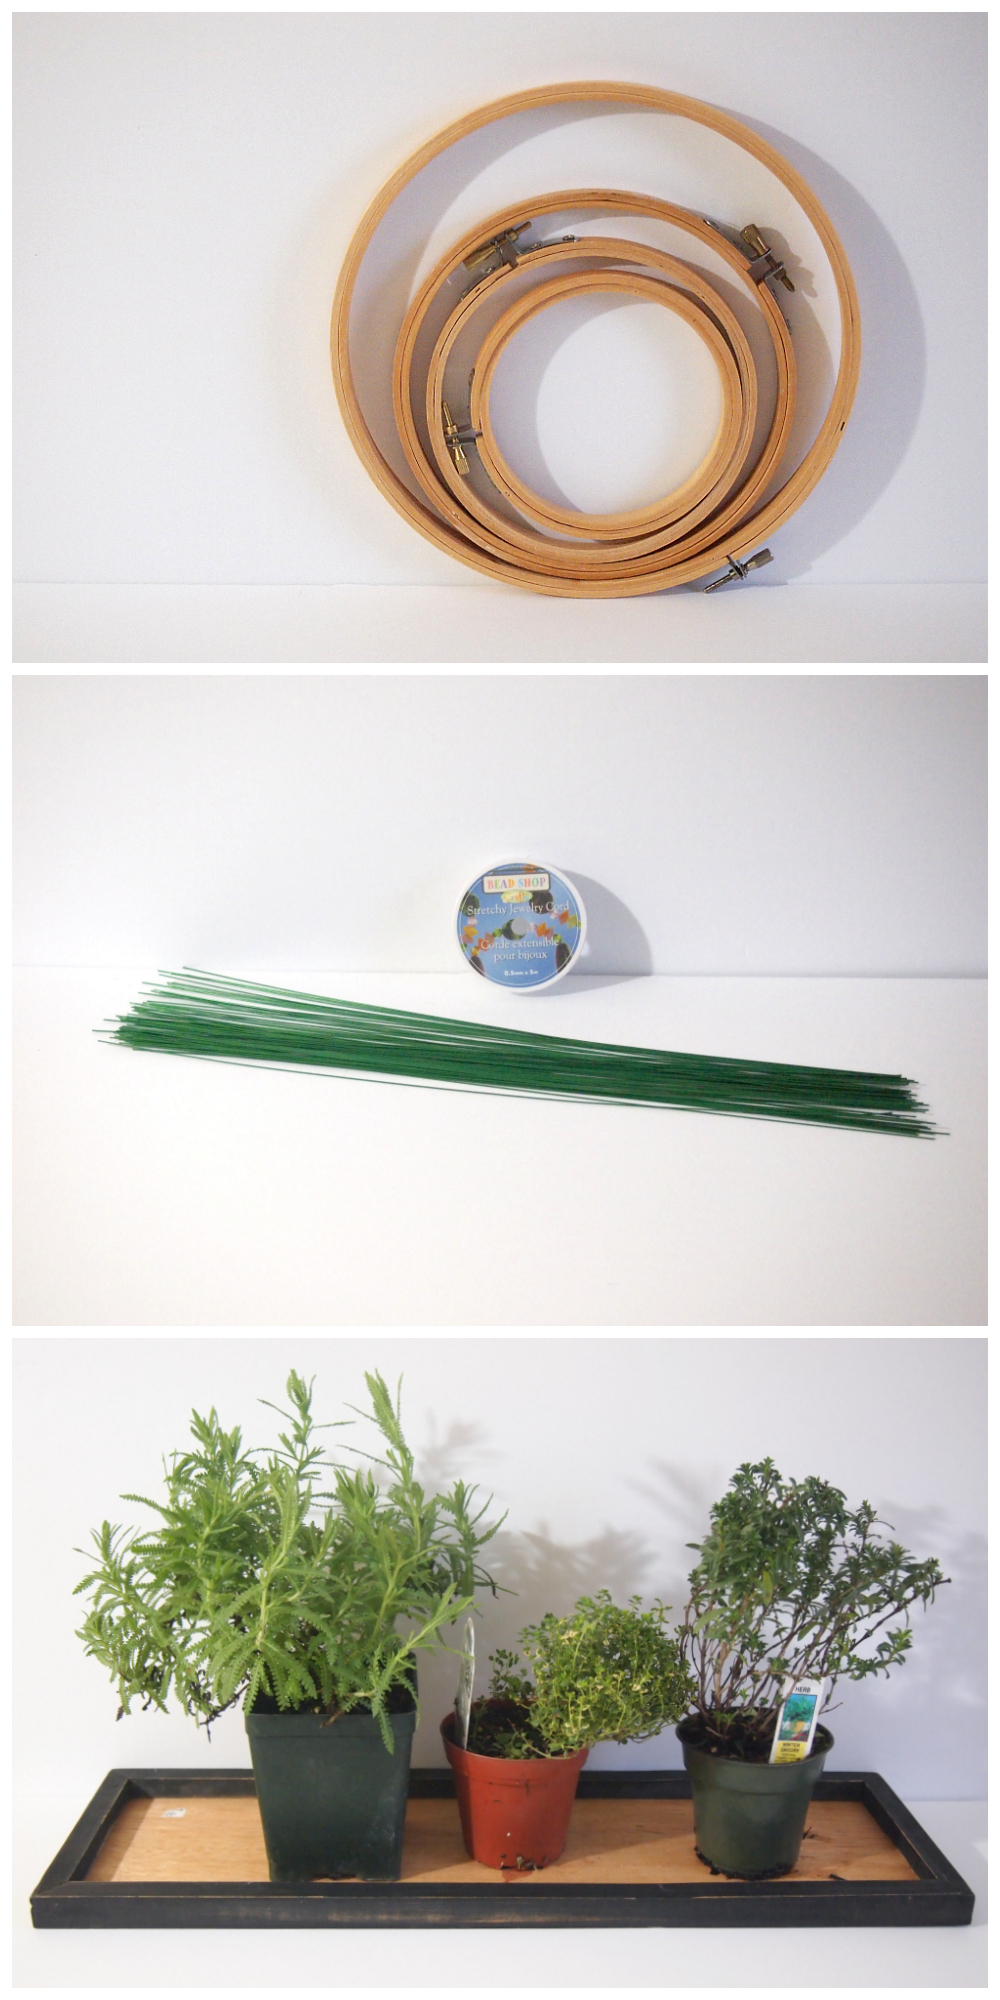 Materials for making a herb wreath DIY 3 in 1 Herb Wreath That Also Smells Great